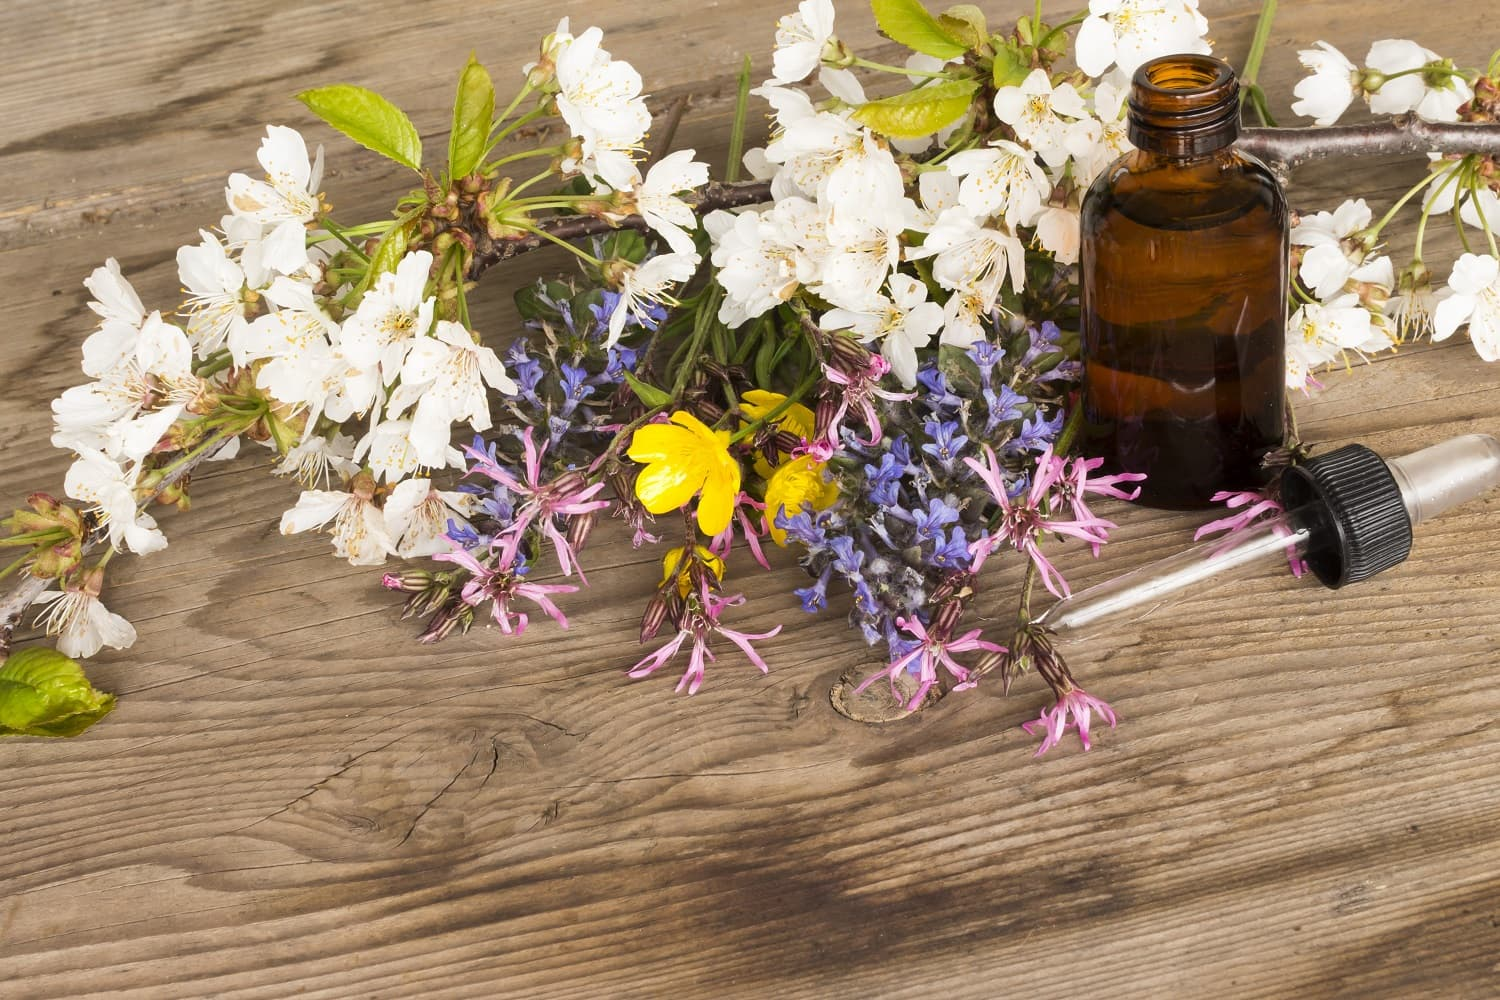 What are flower essences?